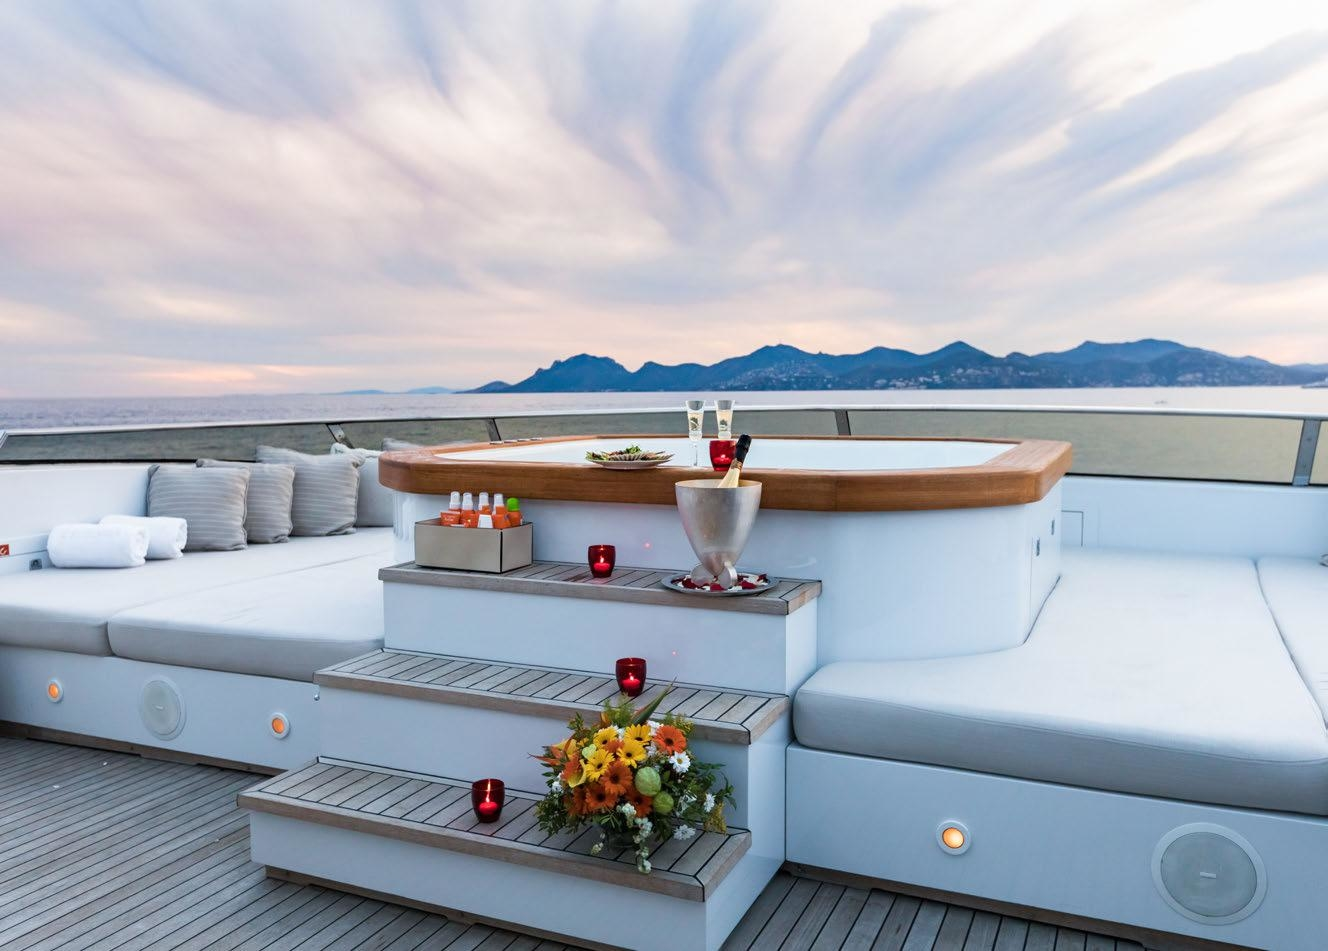 relax in the onboard jacuzzi